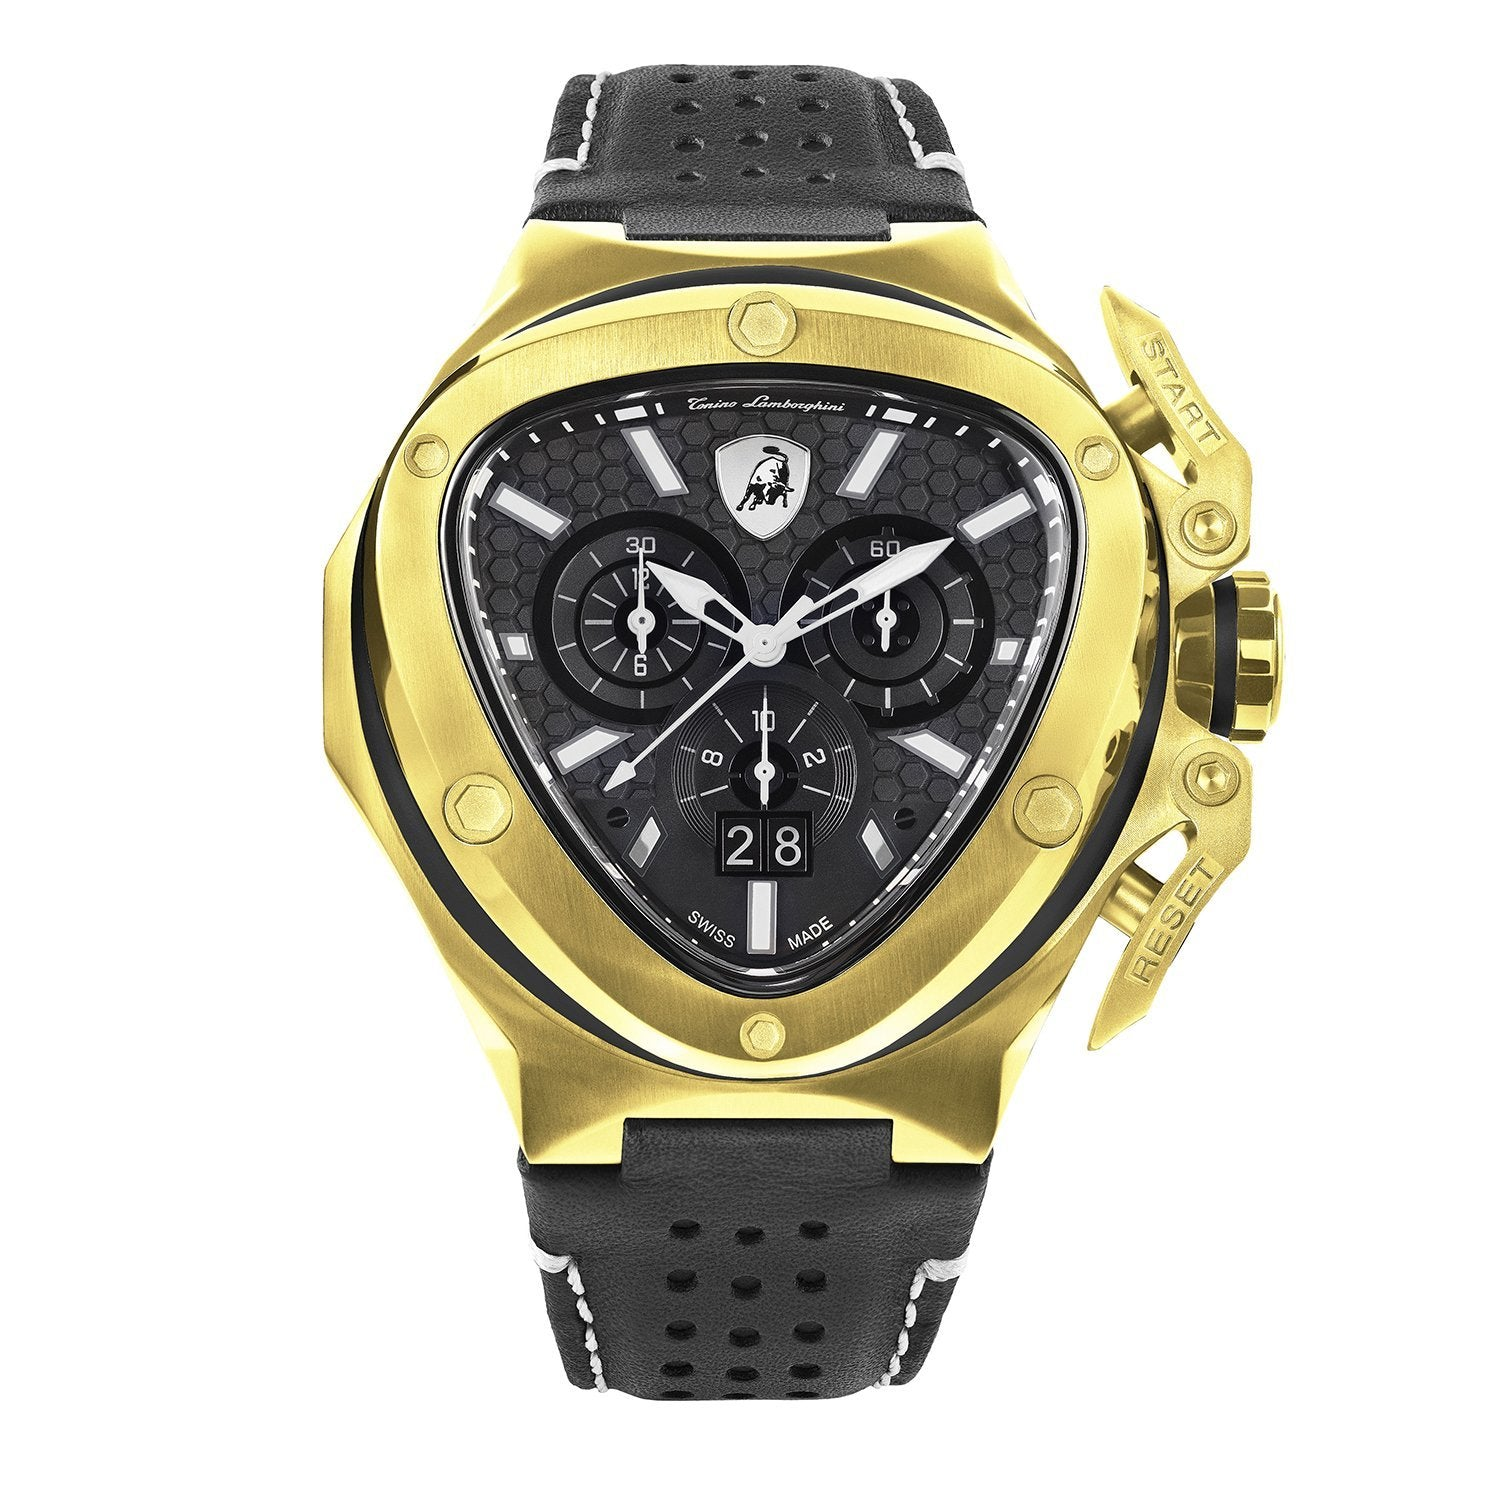 Tonino Lamborghini Spyder X Chronograph Date Gold - Watches & Crystals